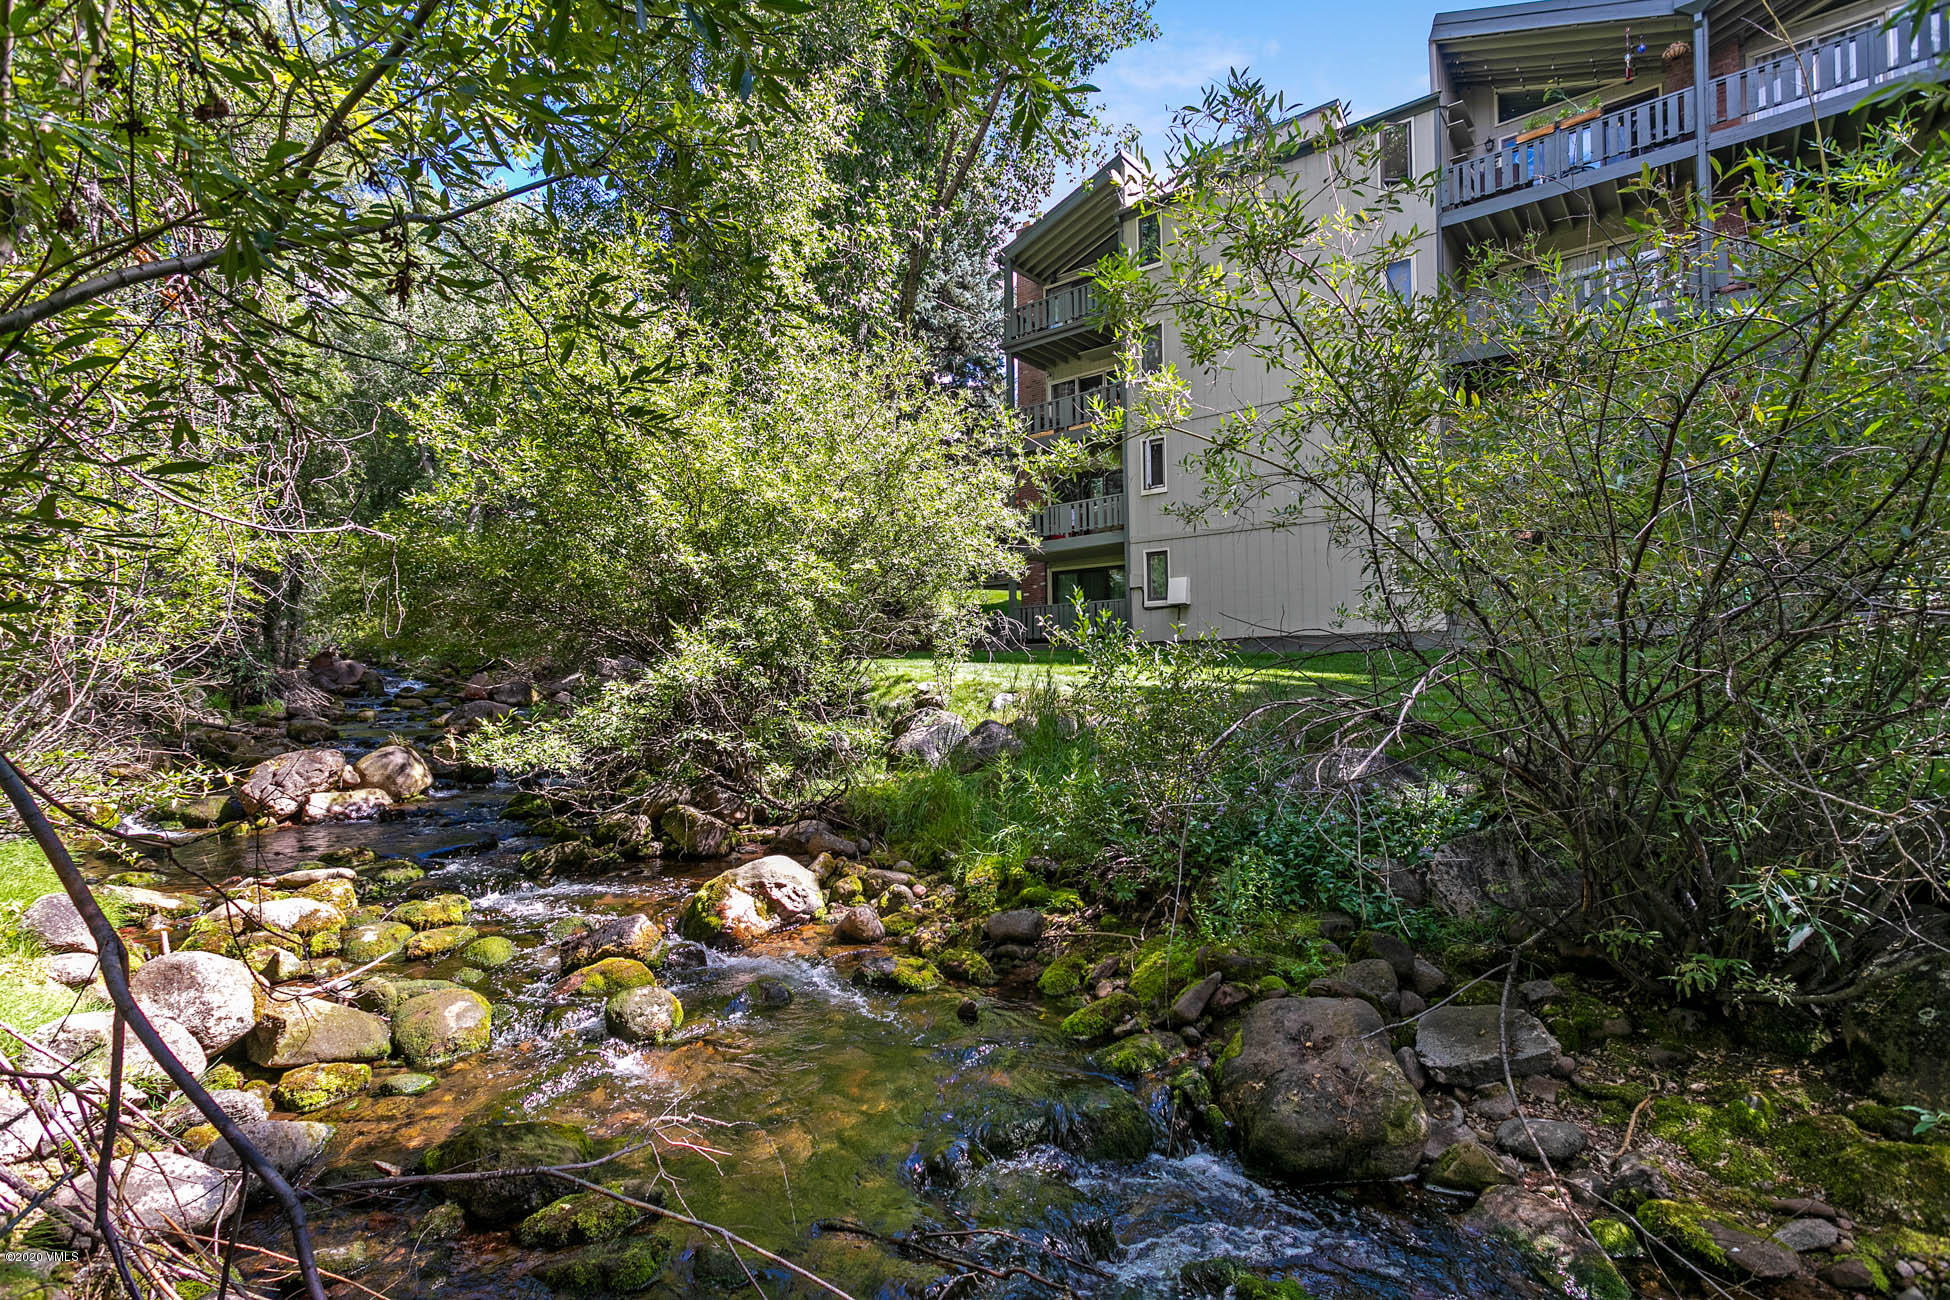 Walk to Lionshead from this beautiful 2 bedroom/2 bath overlooking Sandstone Creek!  Impeccably maintained and offered furnished!  End unit with lots of windows and light!  Sleep to the sounds of the creek!